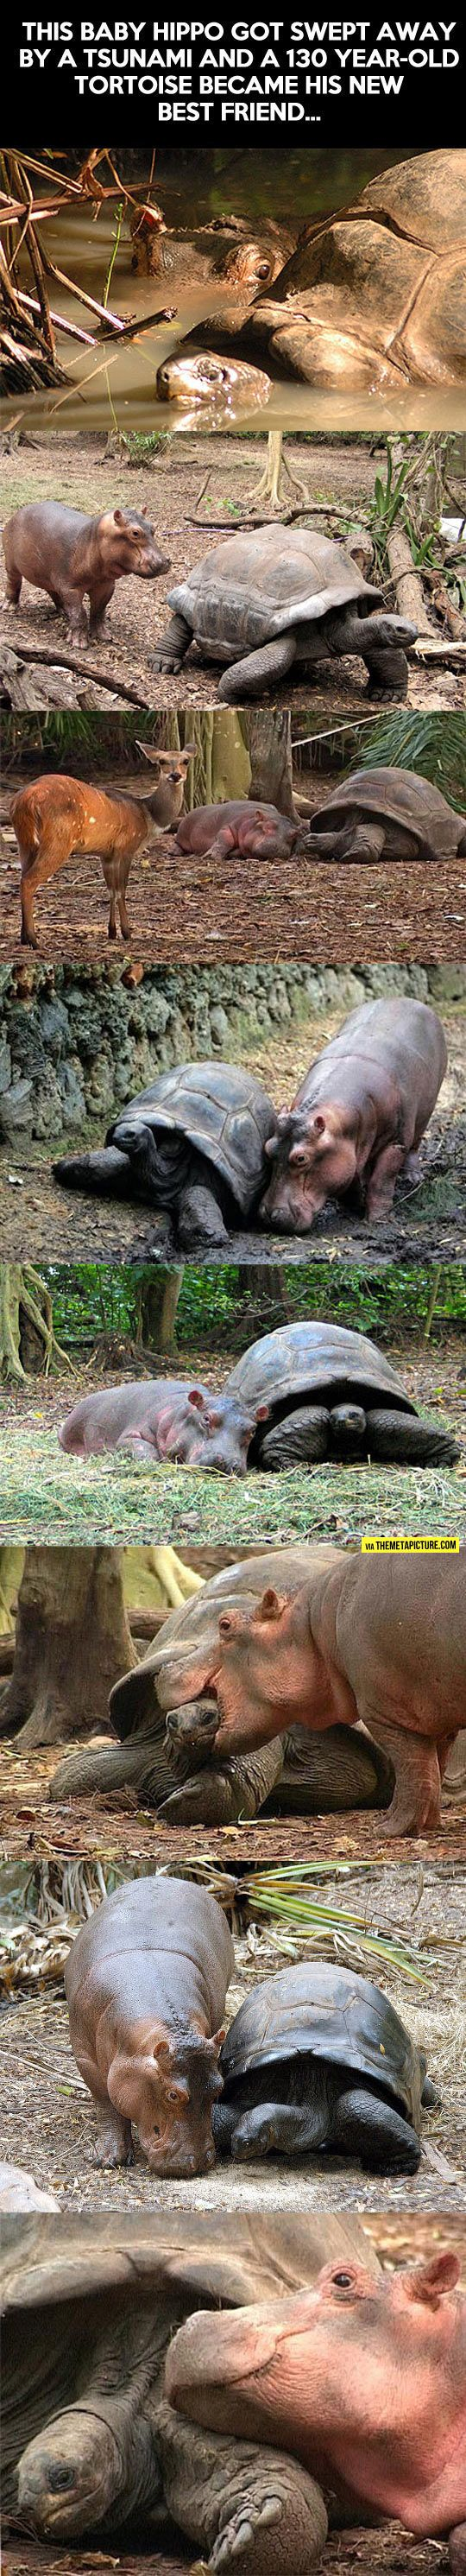 Baby Hippo And Old Tortoise - The Meta Picture